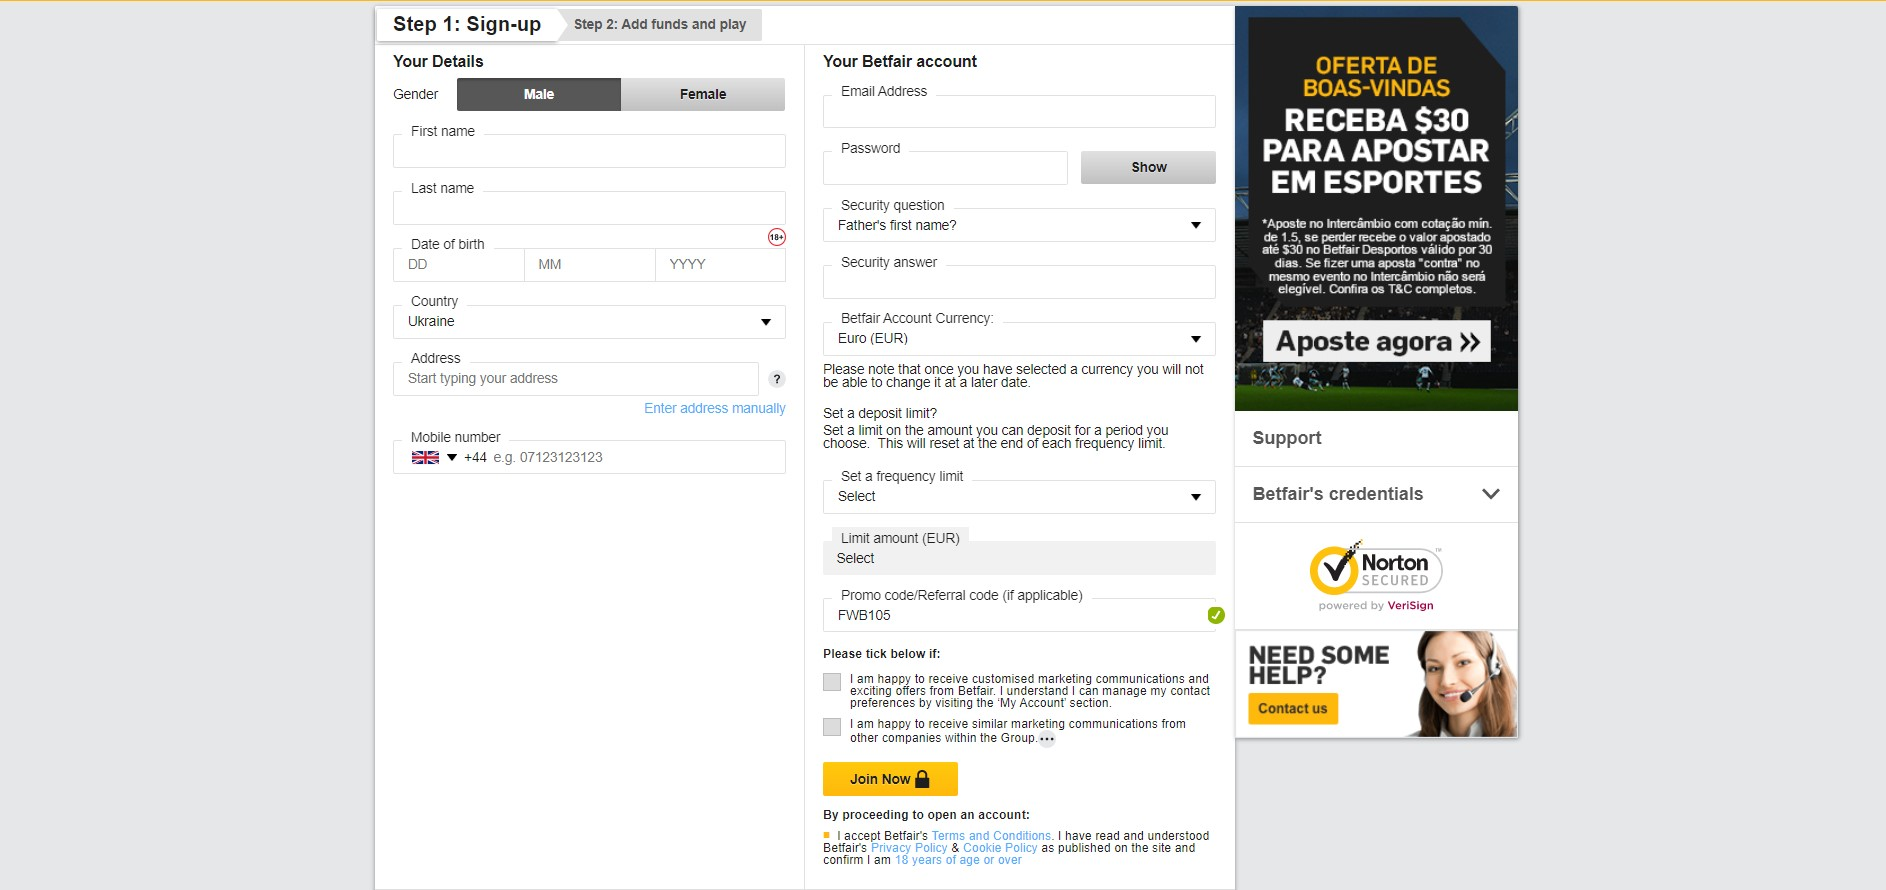 Betfair sign-up